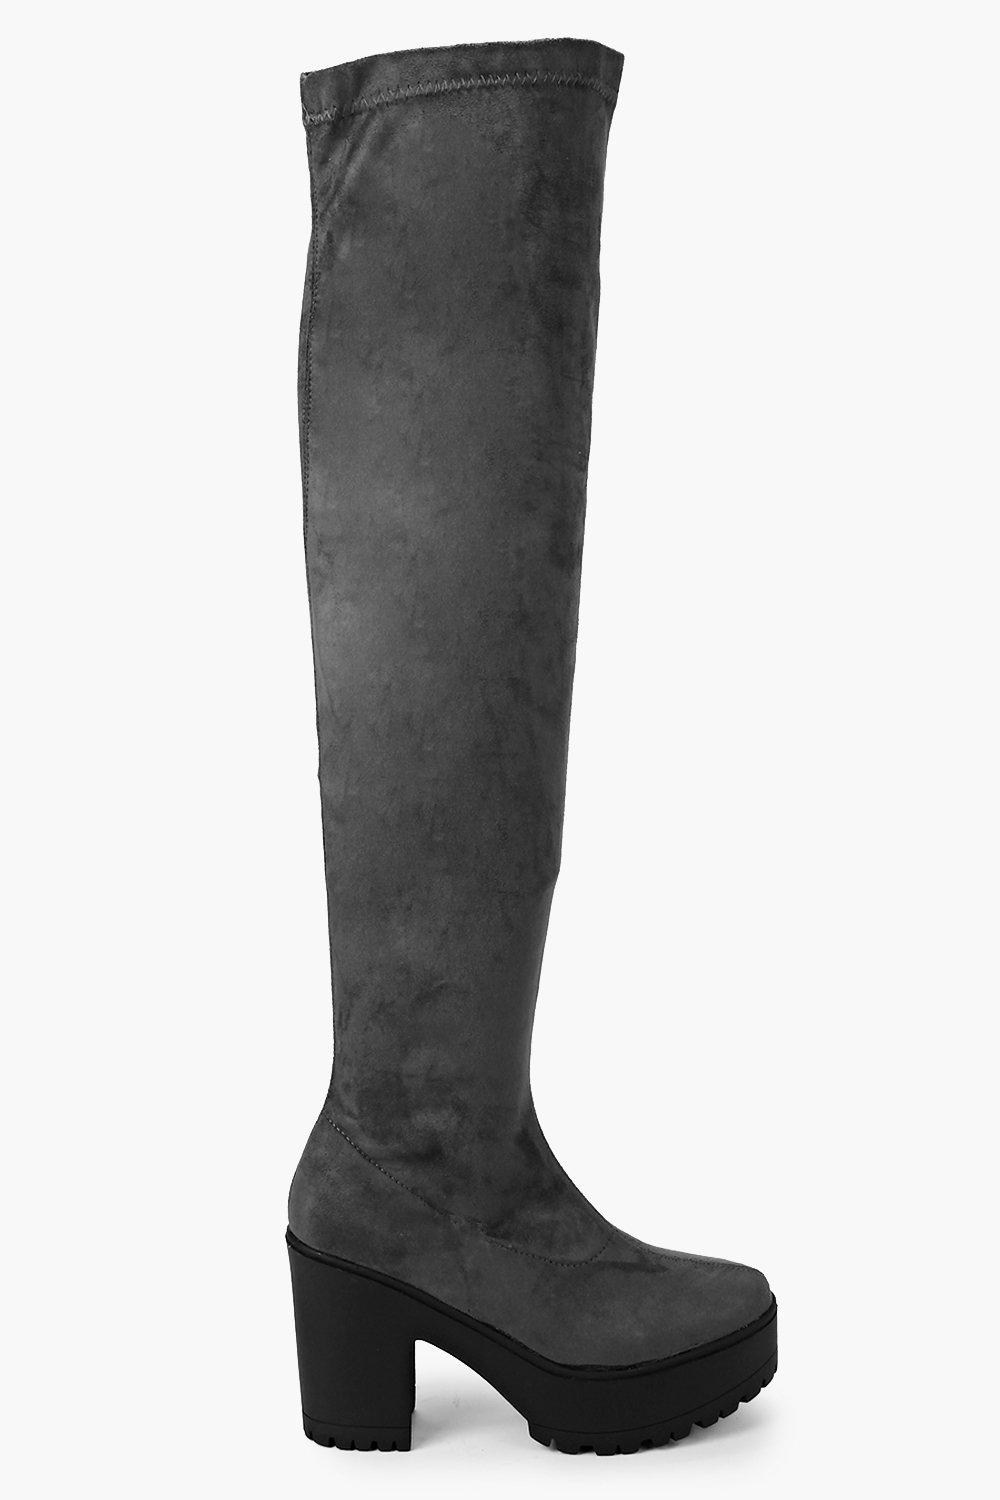 Tia Cleated Block Heel Over The Knee Boot